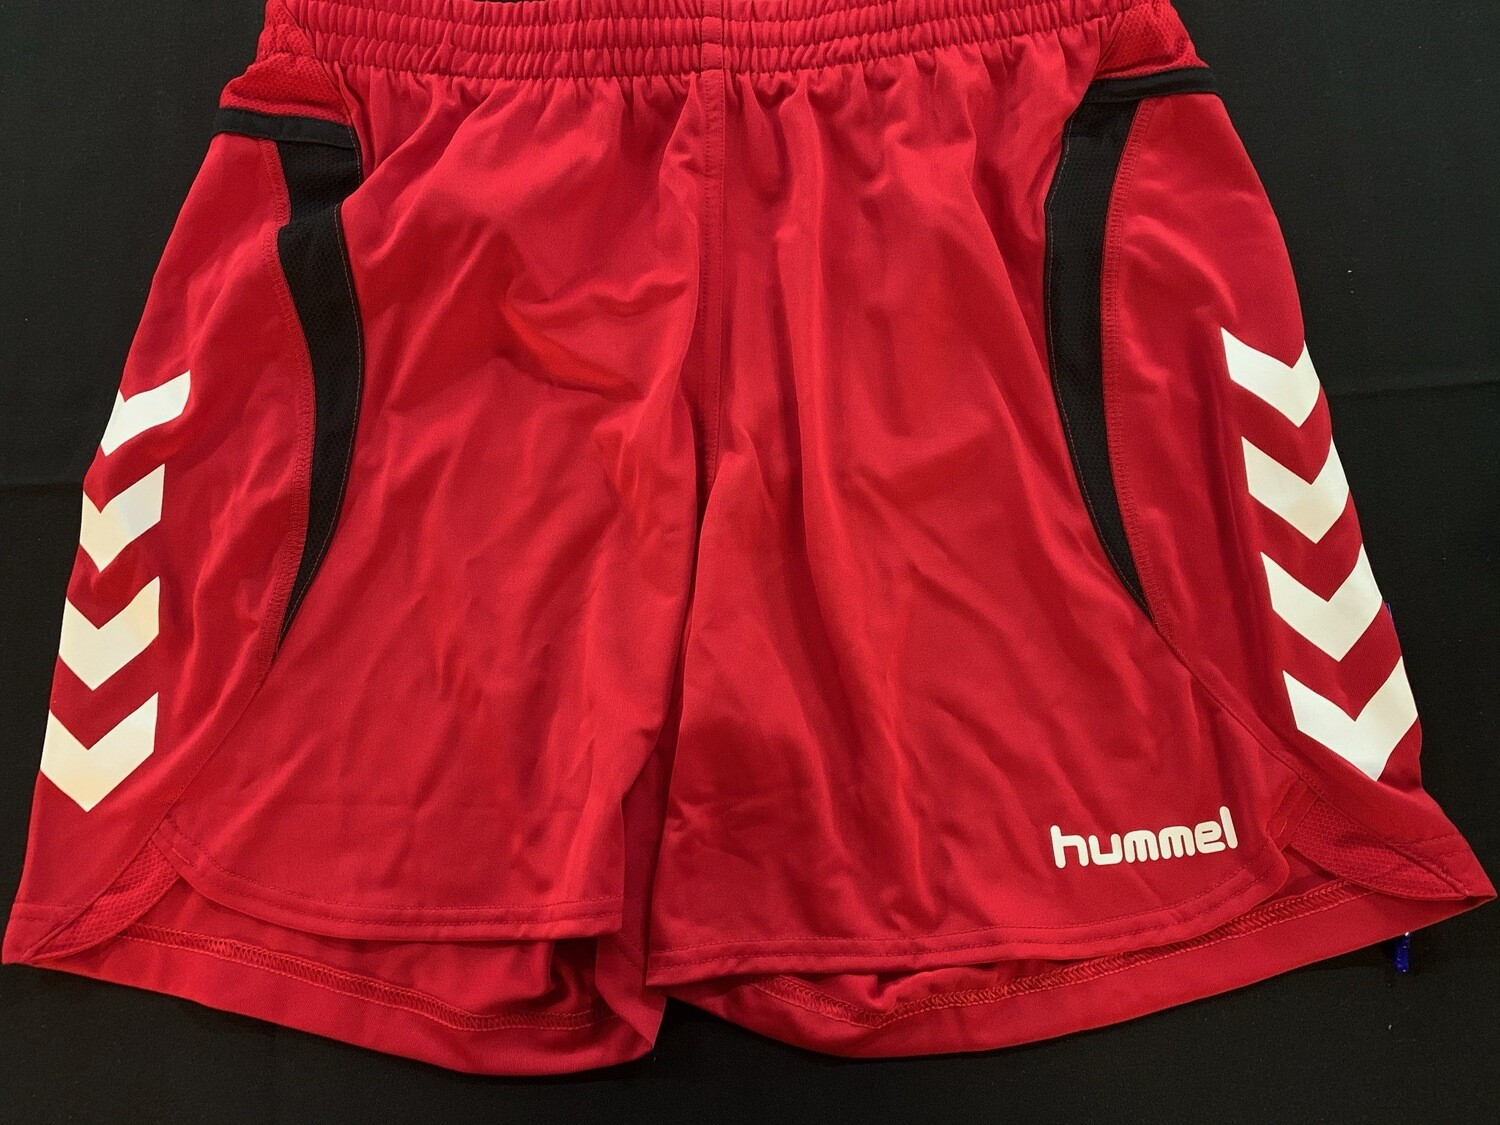 Hummel Training Shorts - SALE